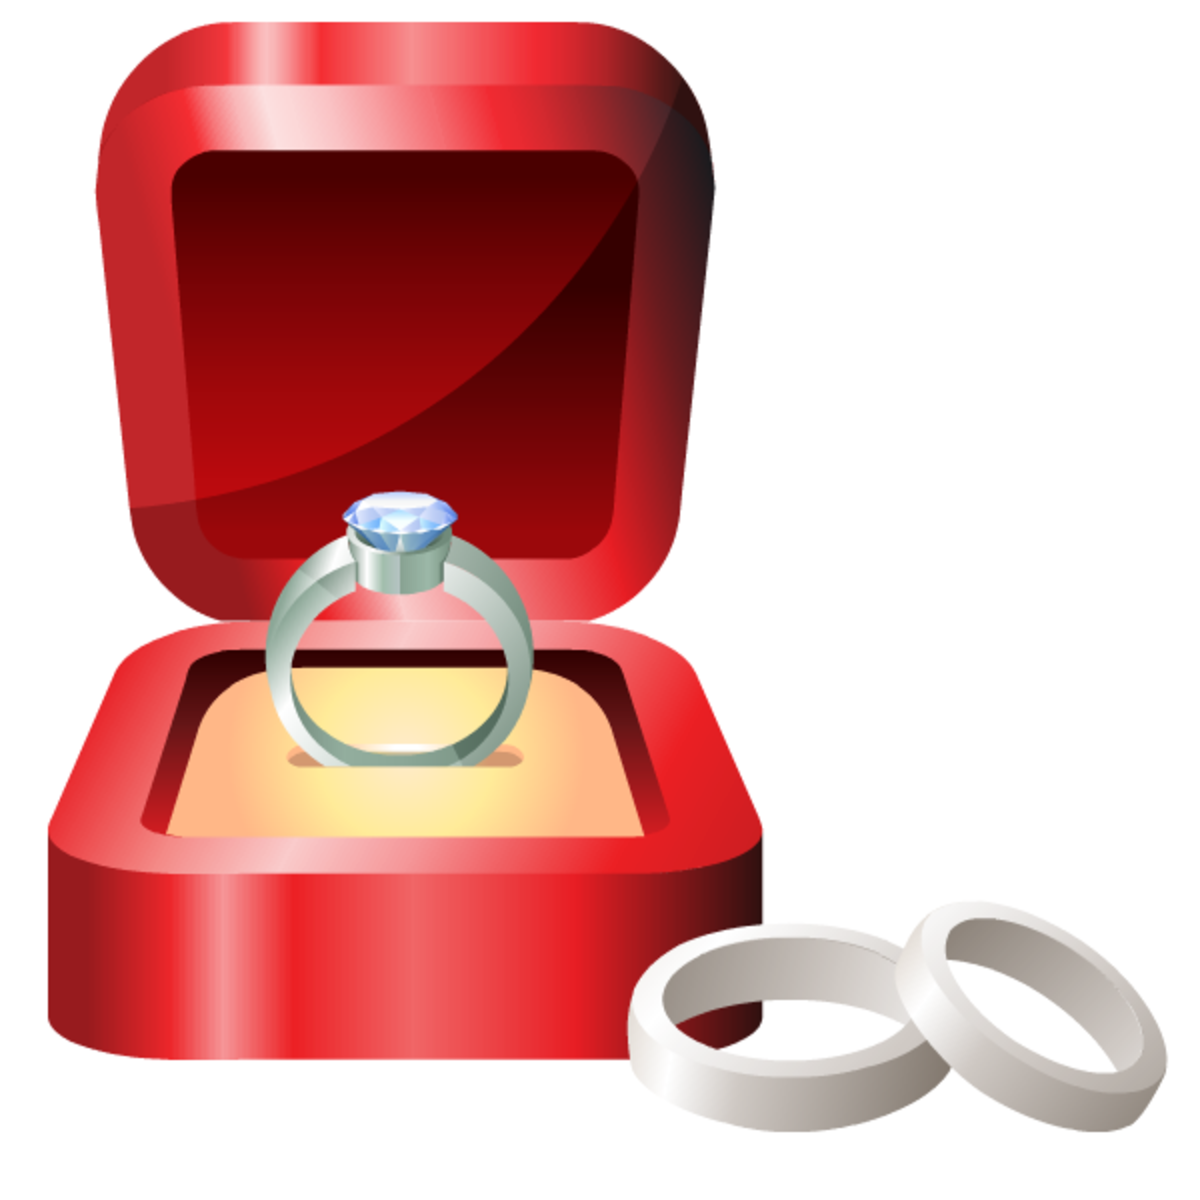 Scroll down to see all the engagement, wedding and bridal shower clip art